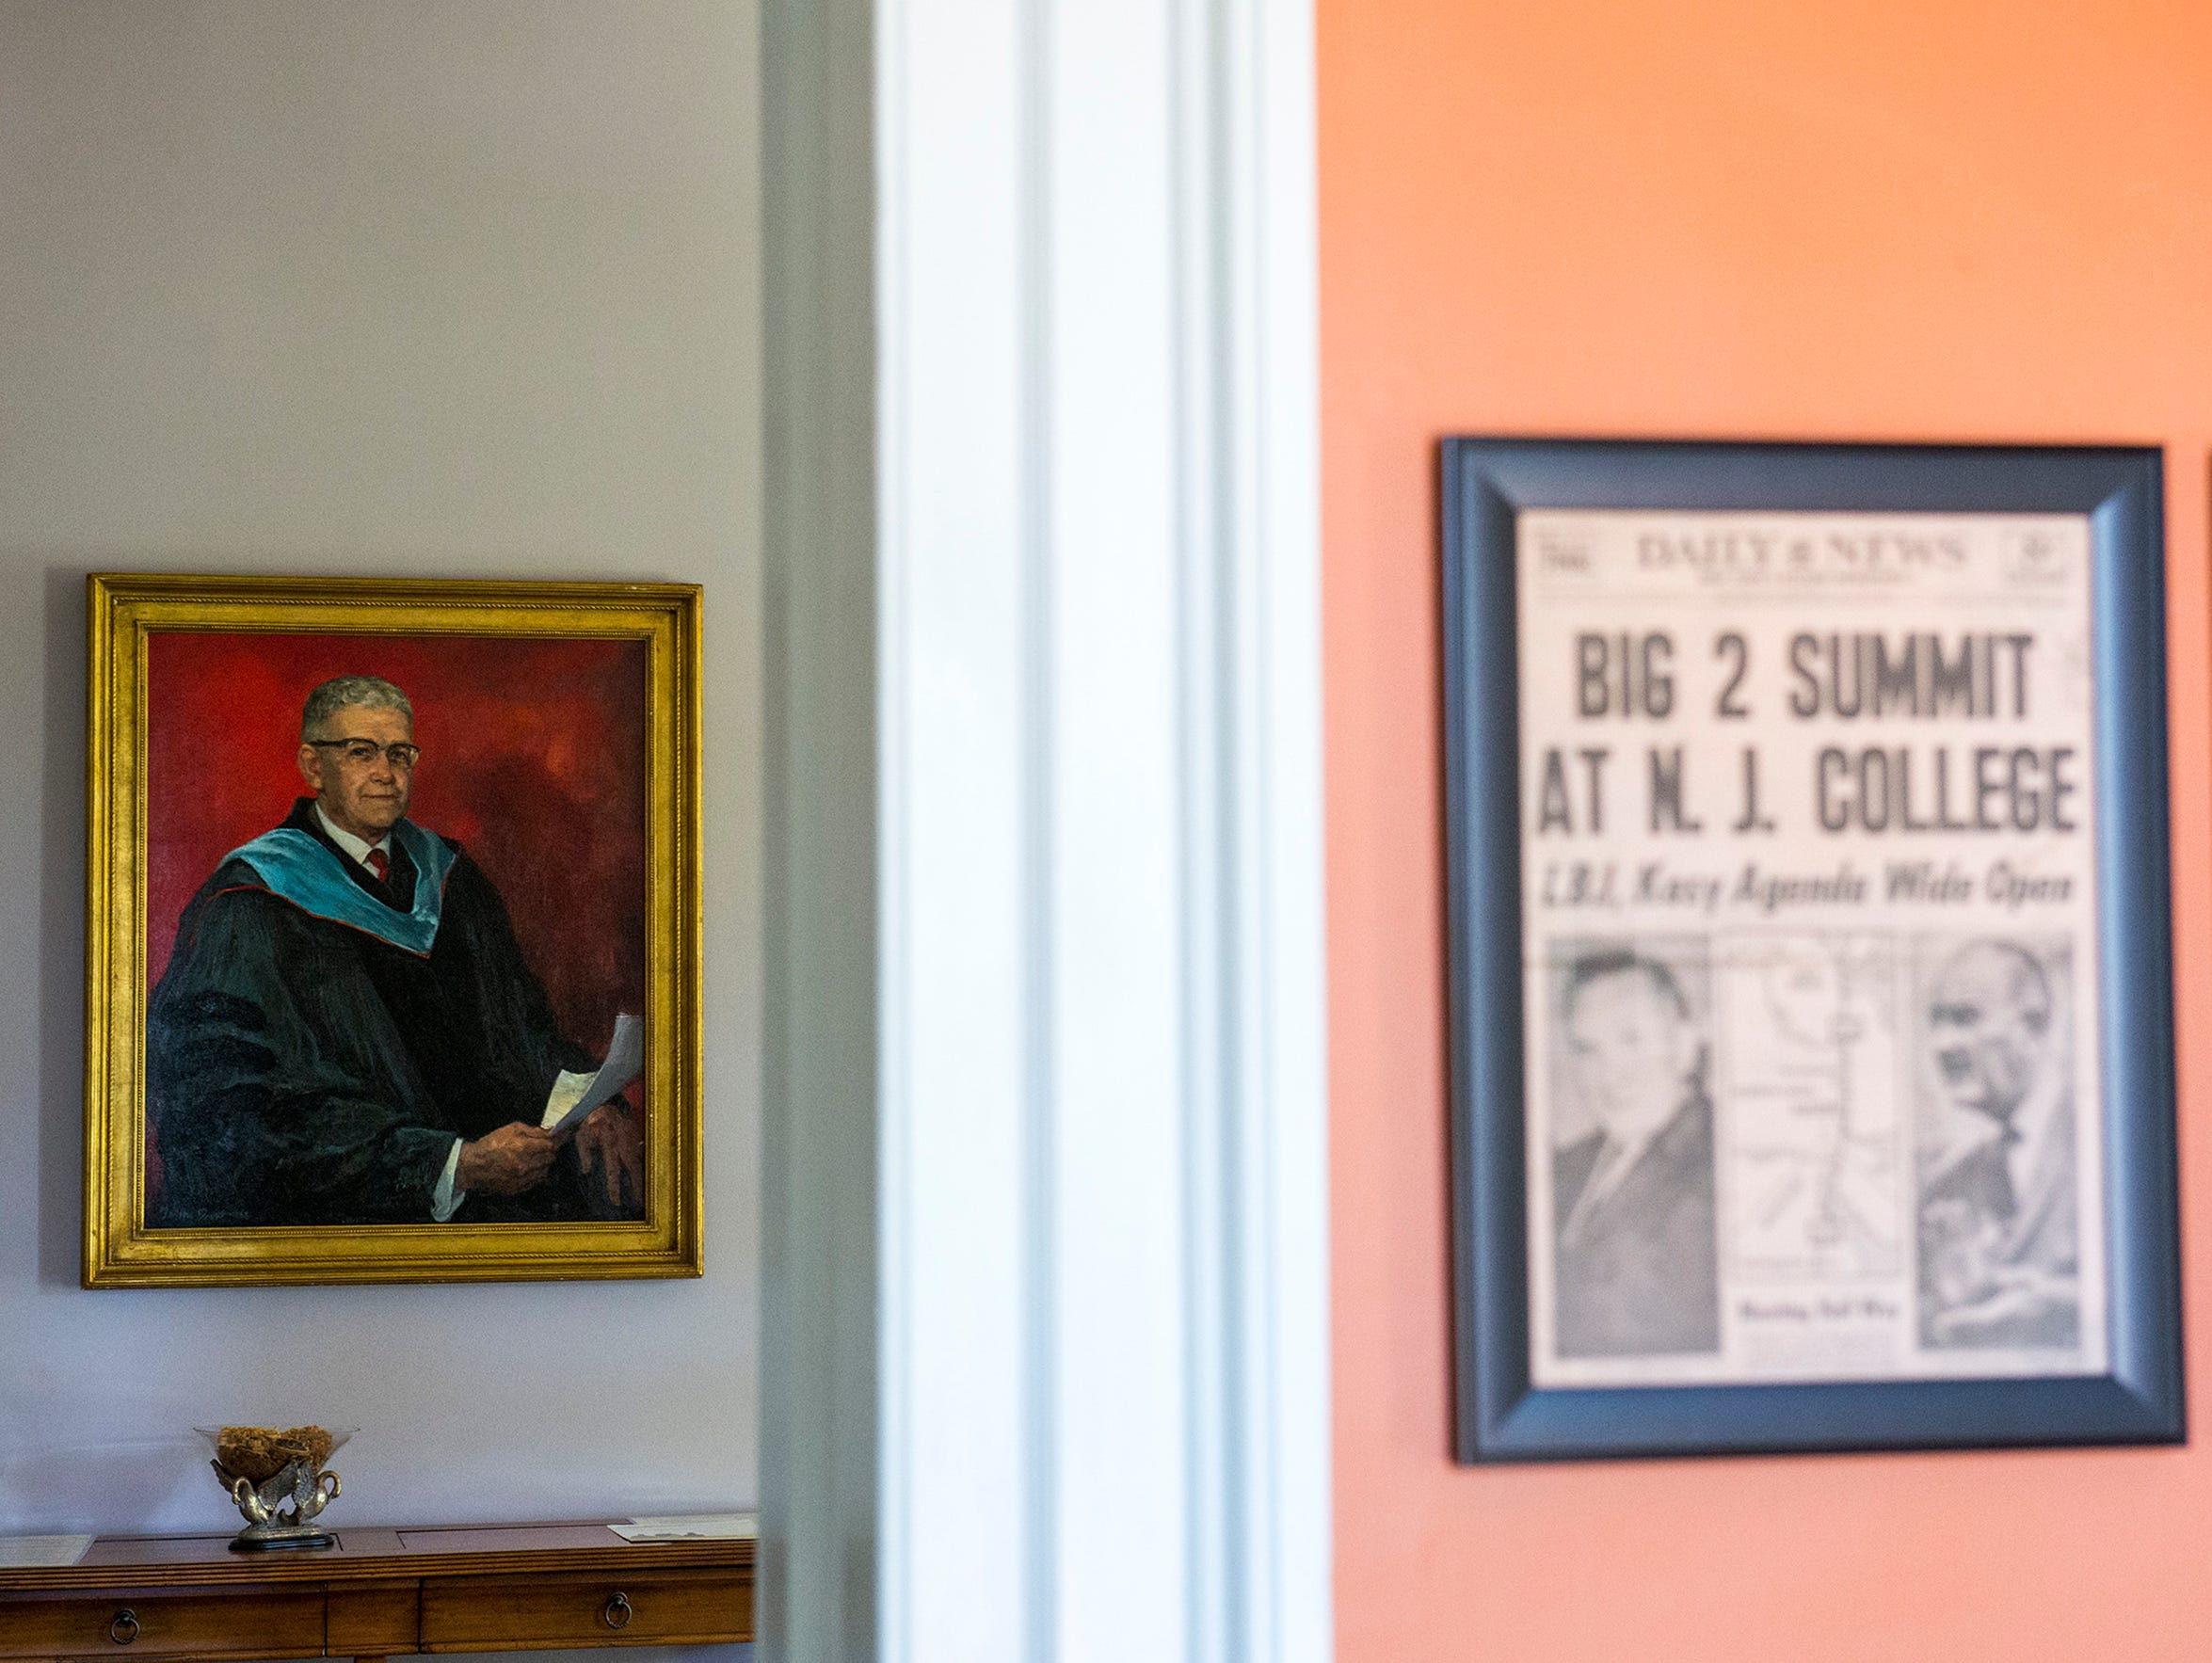 A painting of Dr. Thomas E. Robinson hangs inside the